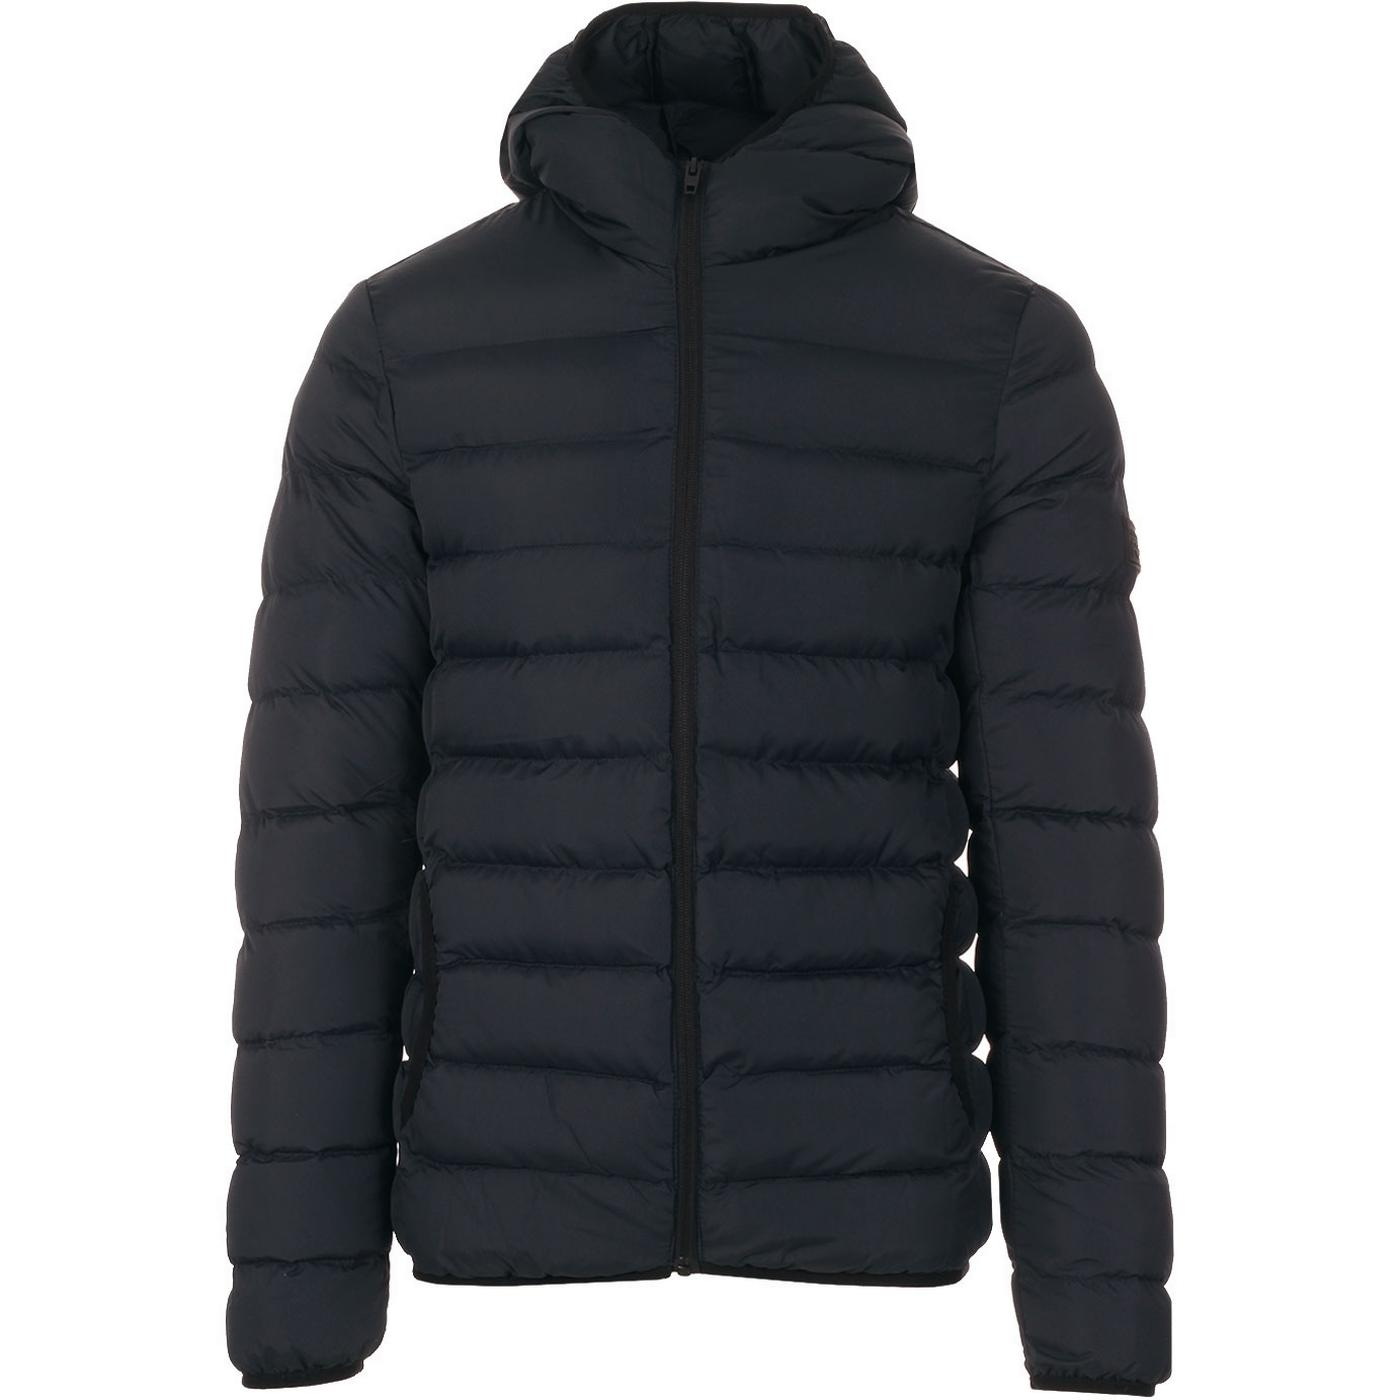 FRENCH CONNECTION Men's Hooded Padded Jacket M